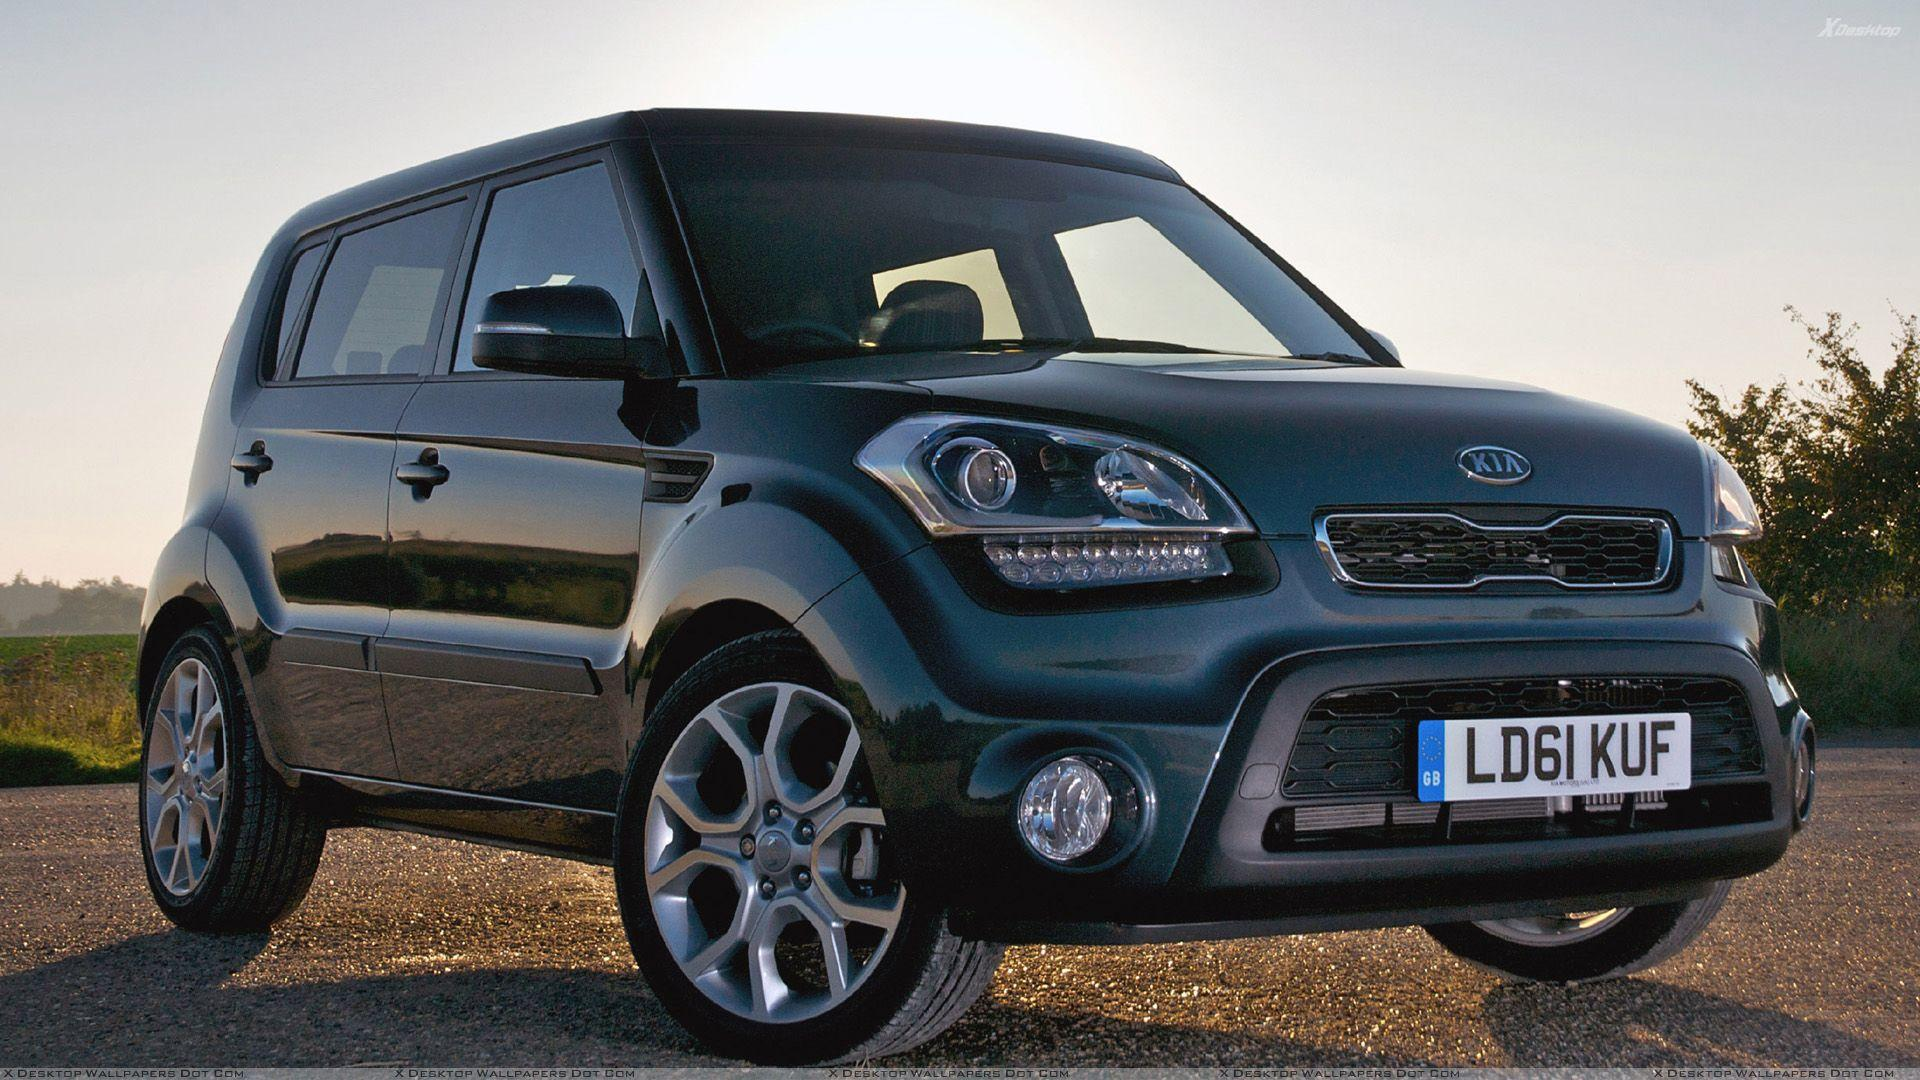 Kia Soul Wallpapers, Photos & Images in HD